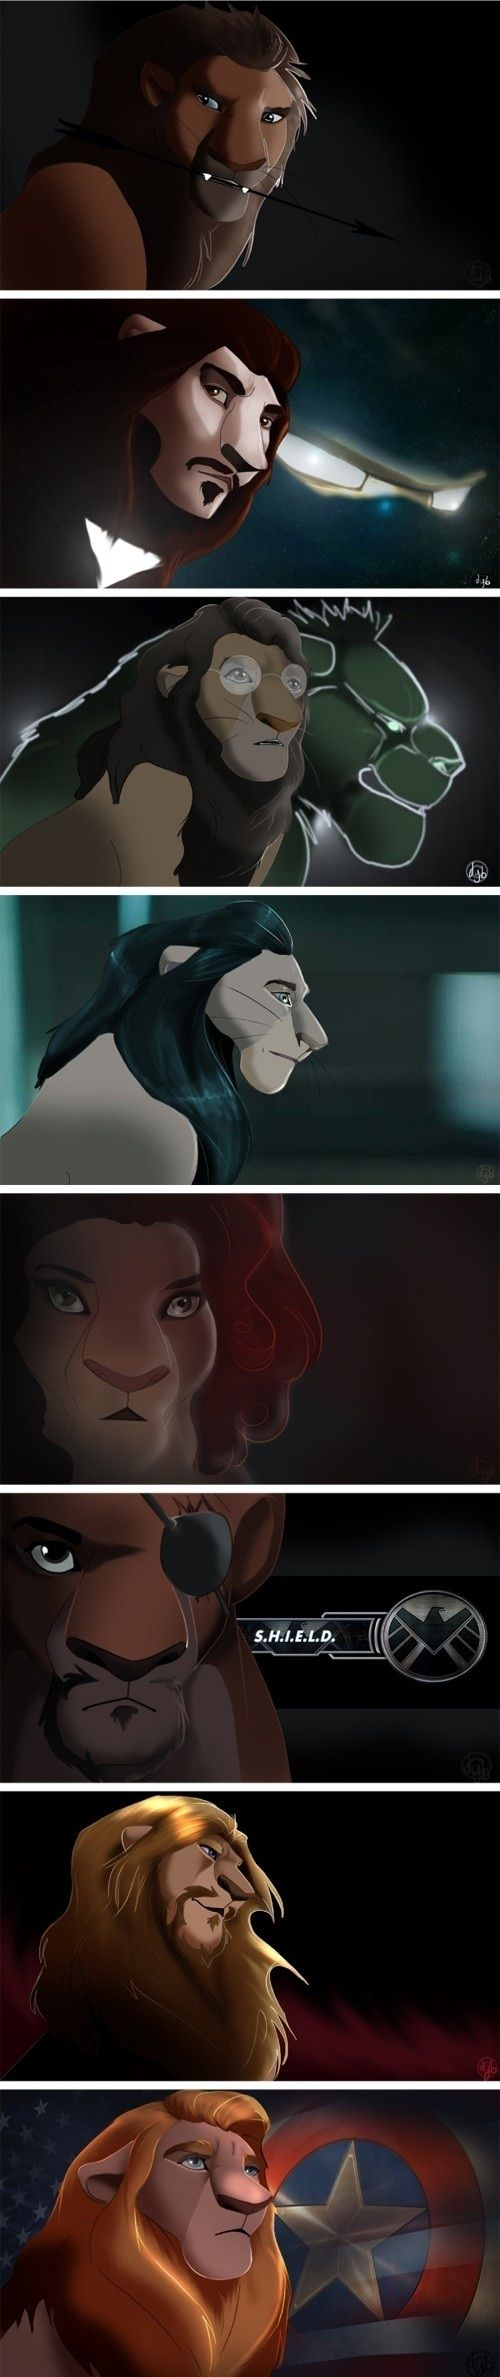 is it just me, or does Loki always look like that?